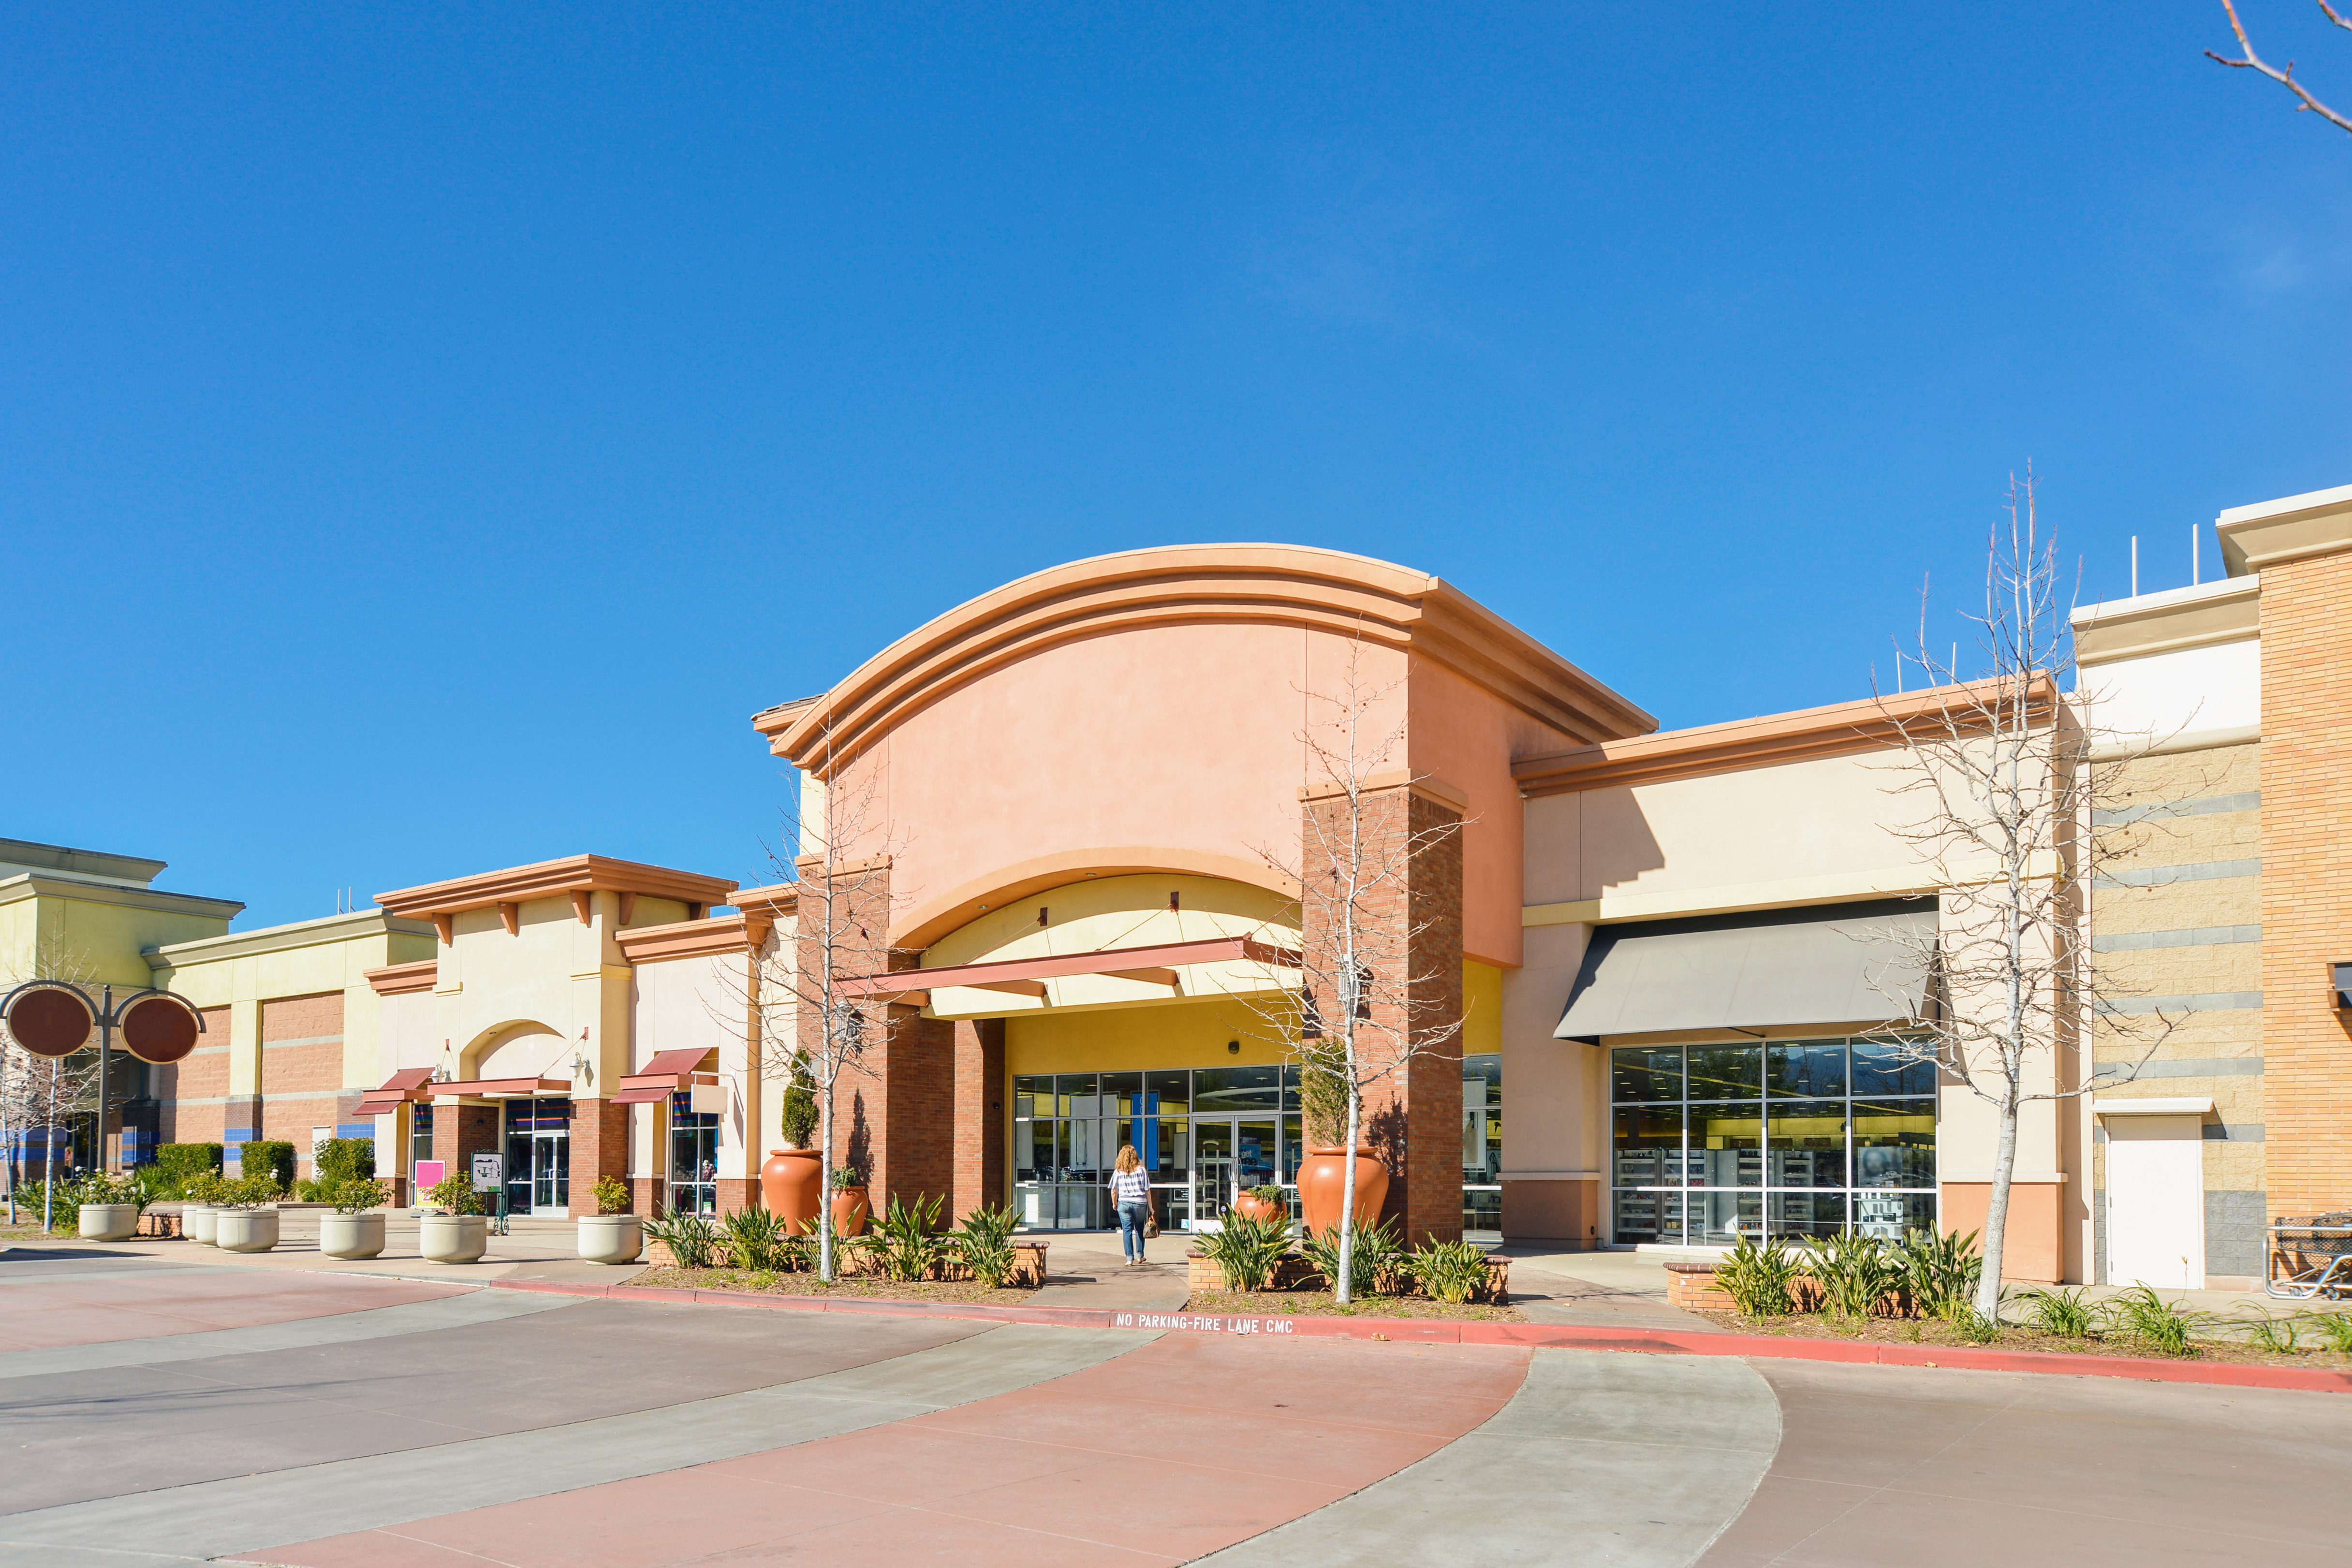 Capital planning: new stores